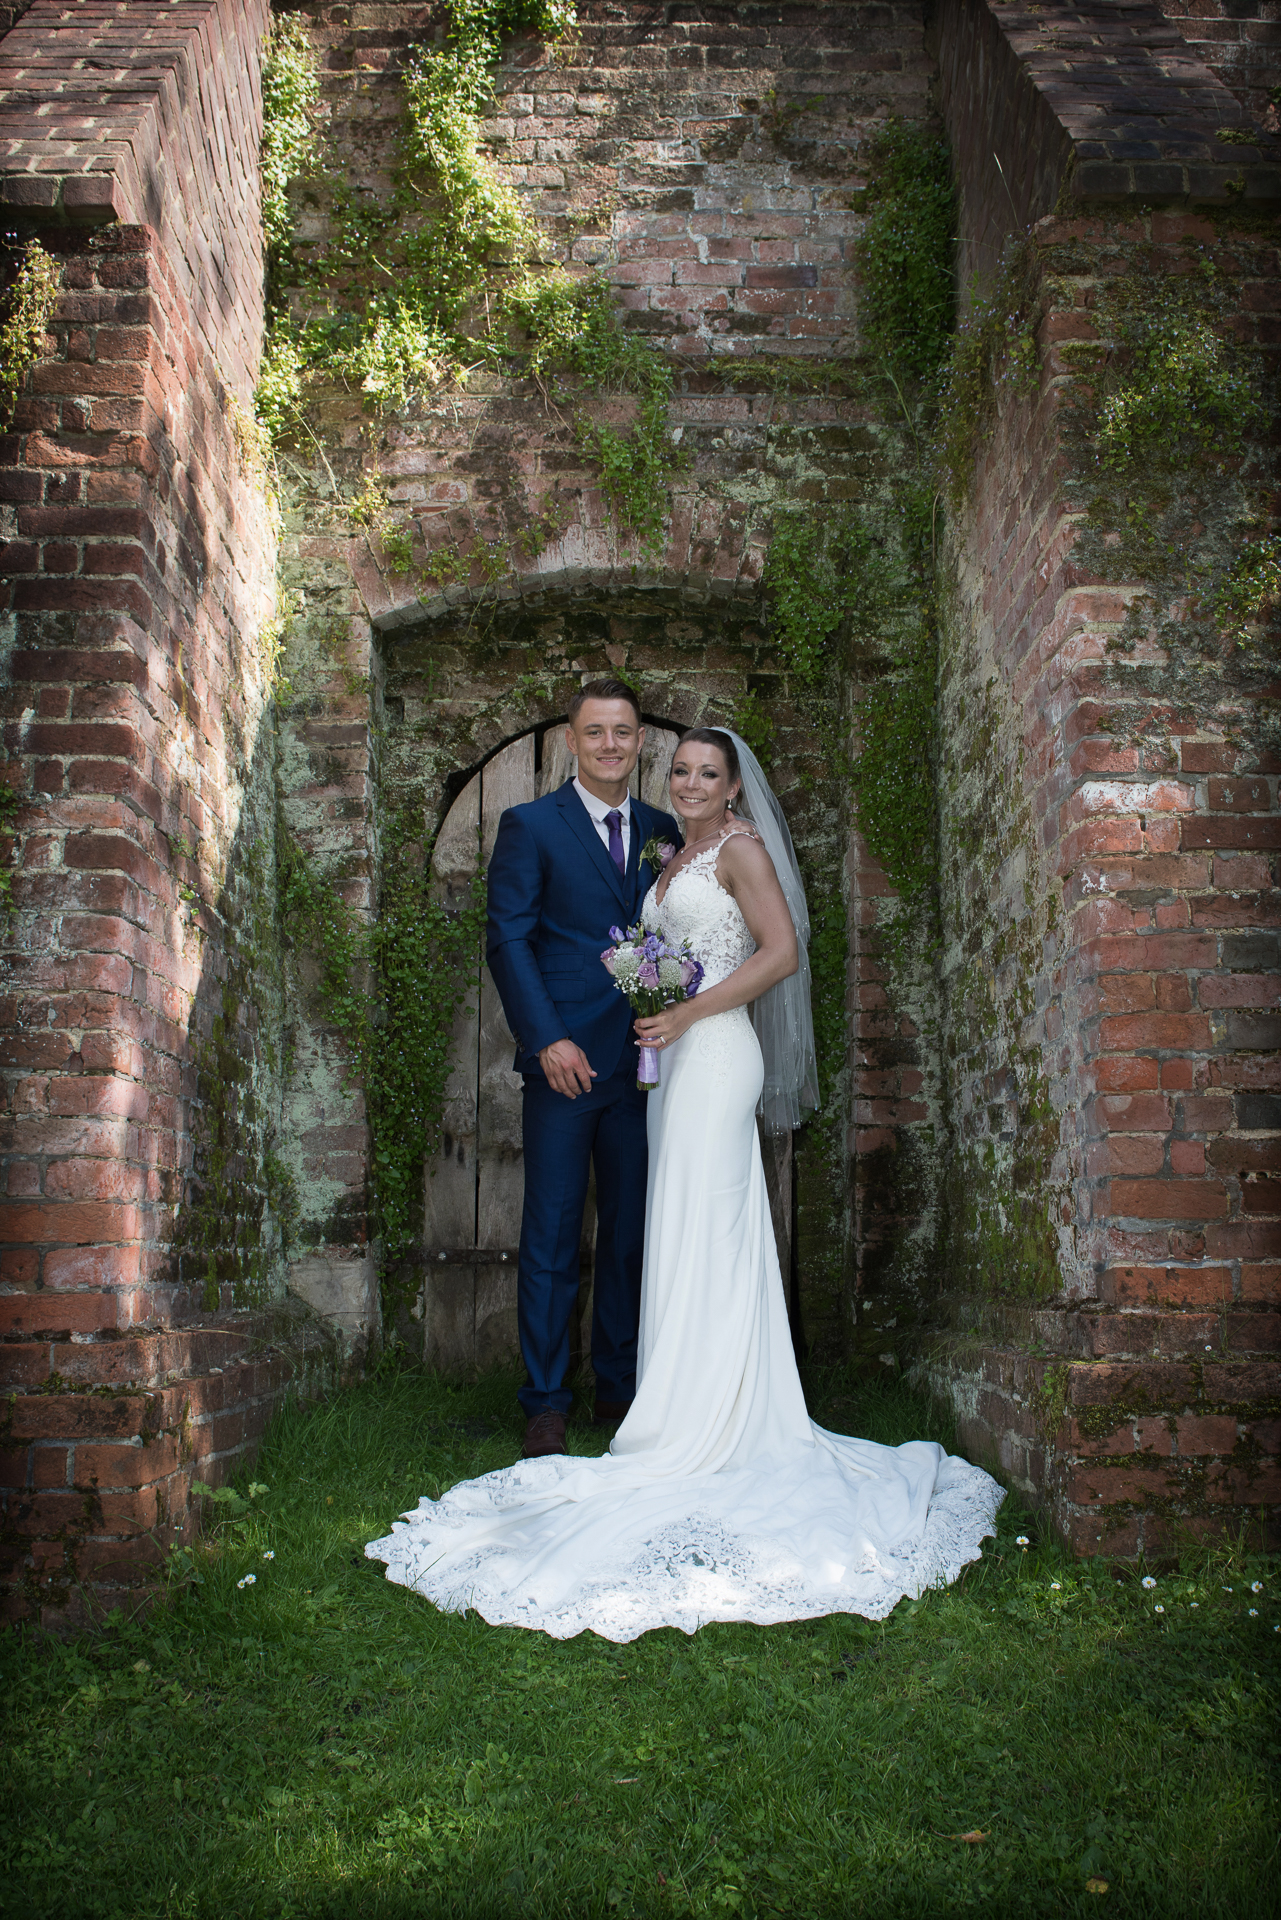 Bride & Groom pose at the Ufton Court garden wall